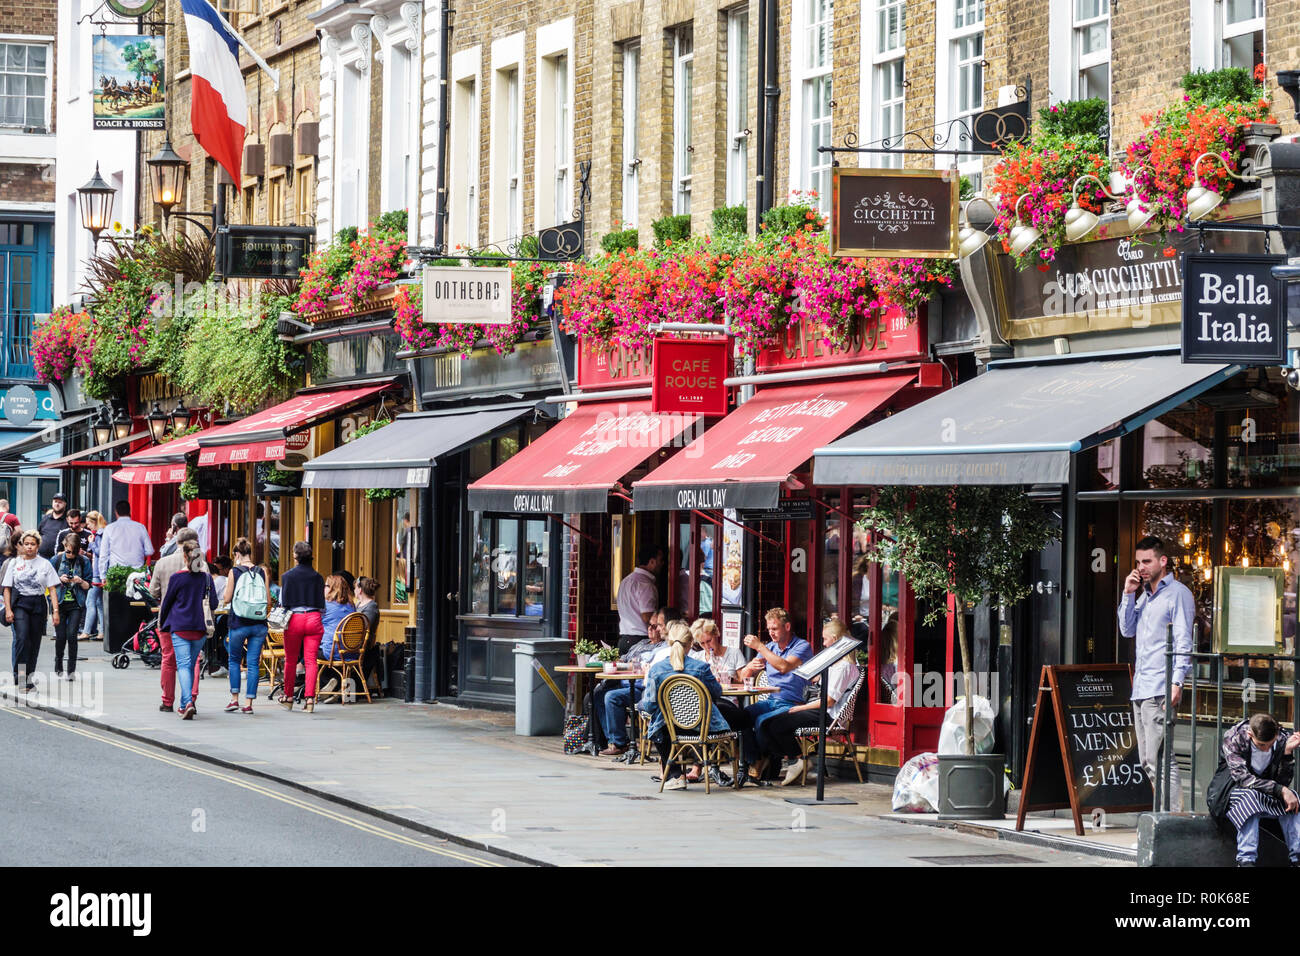 London England United Kingdom Great Britain Covent Garden Wellington Street shopping dining entertainment district restaurants sidewalk cafe awnings f - Stock Image